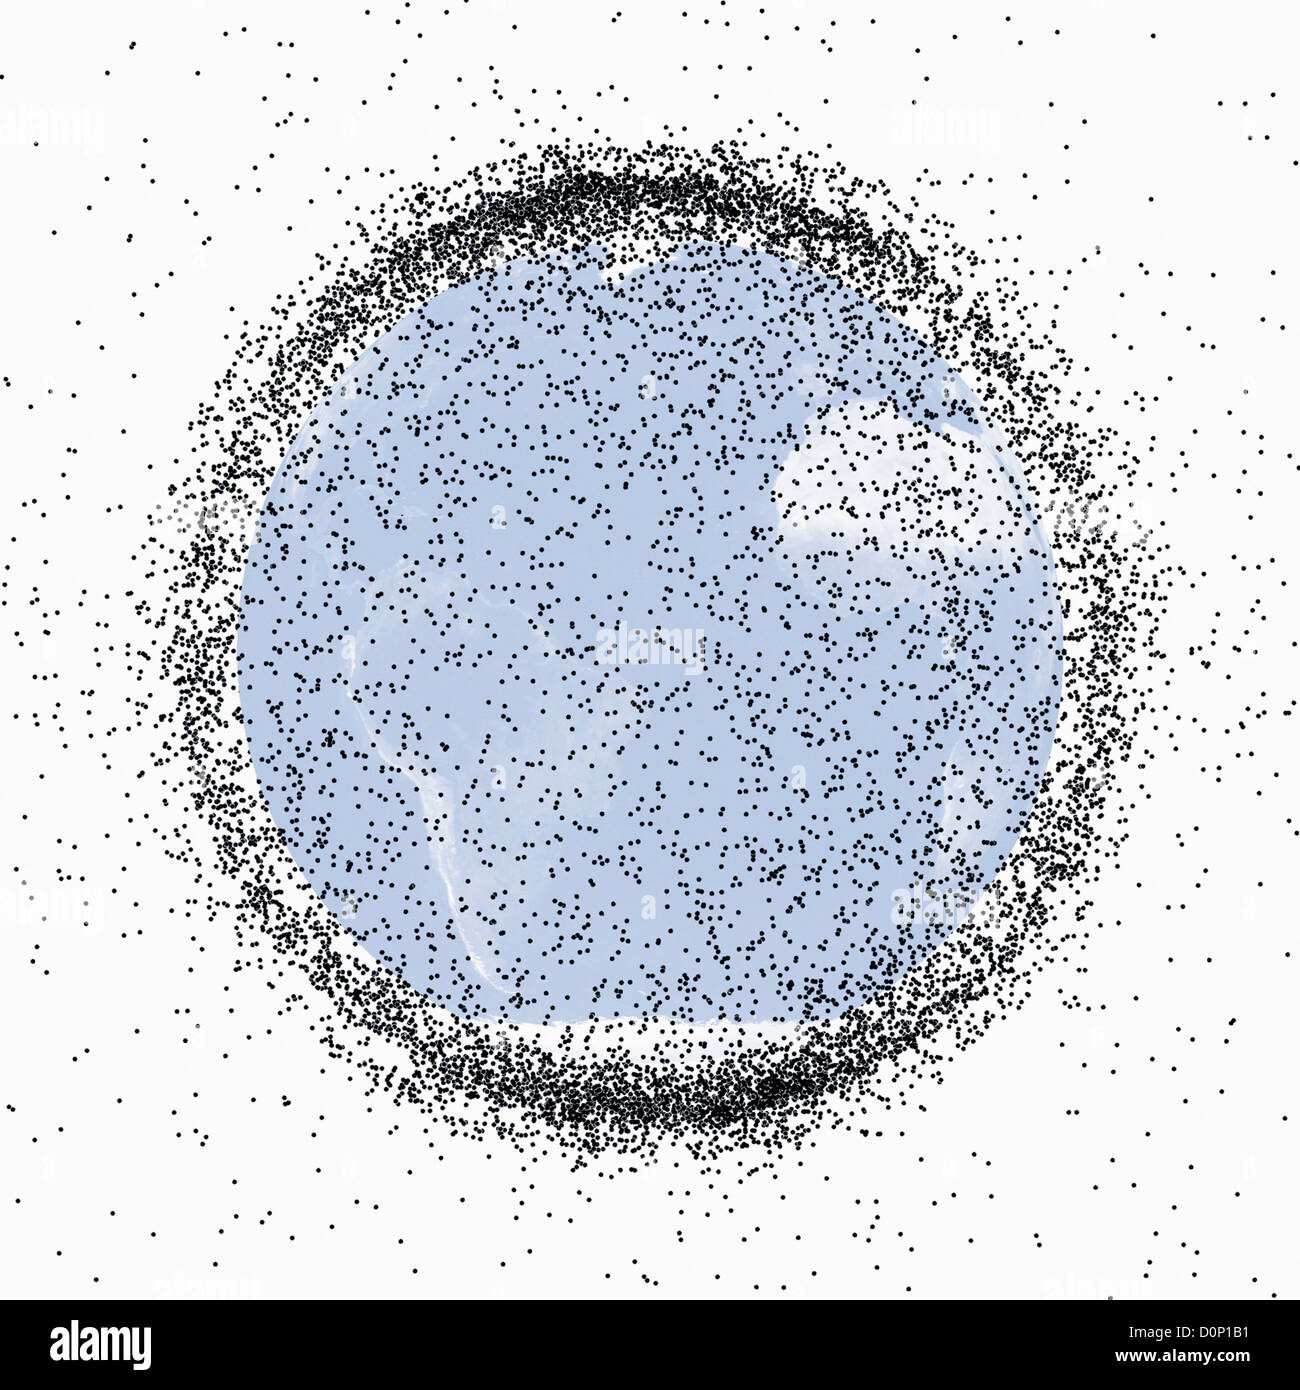 Orbital Debris and Satellites - Stock Image